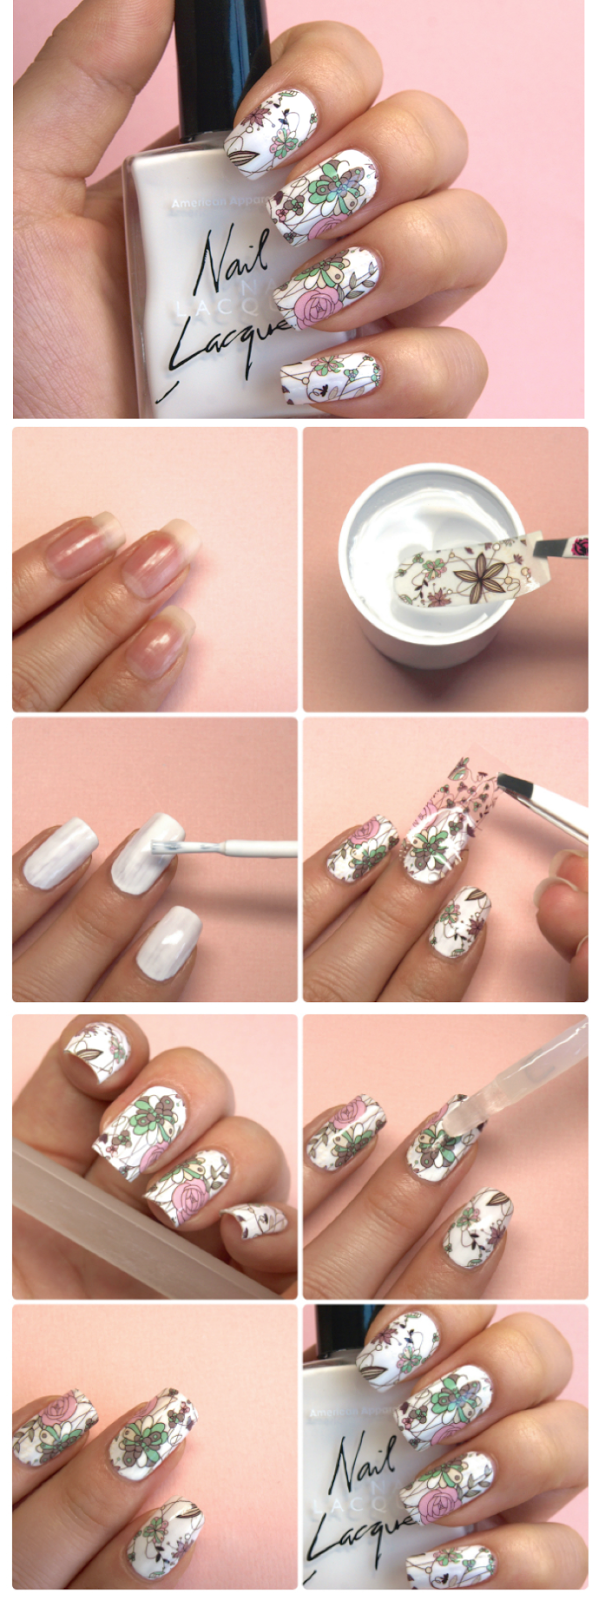 Floral Manicure: A Comprehensive Guide To Full Nail Water